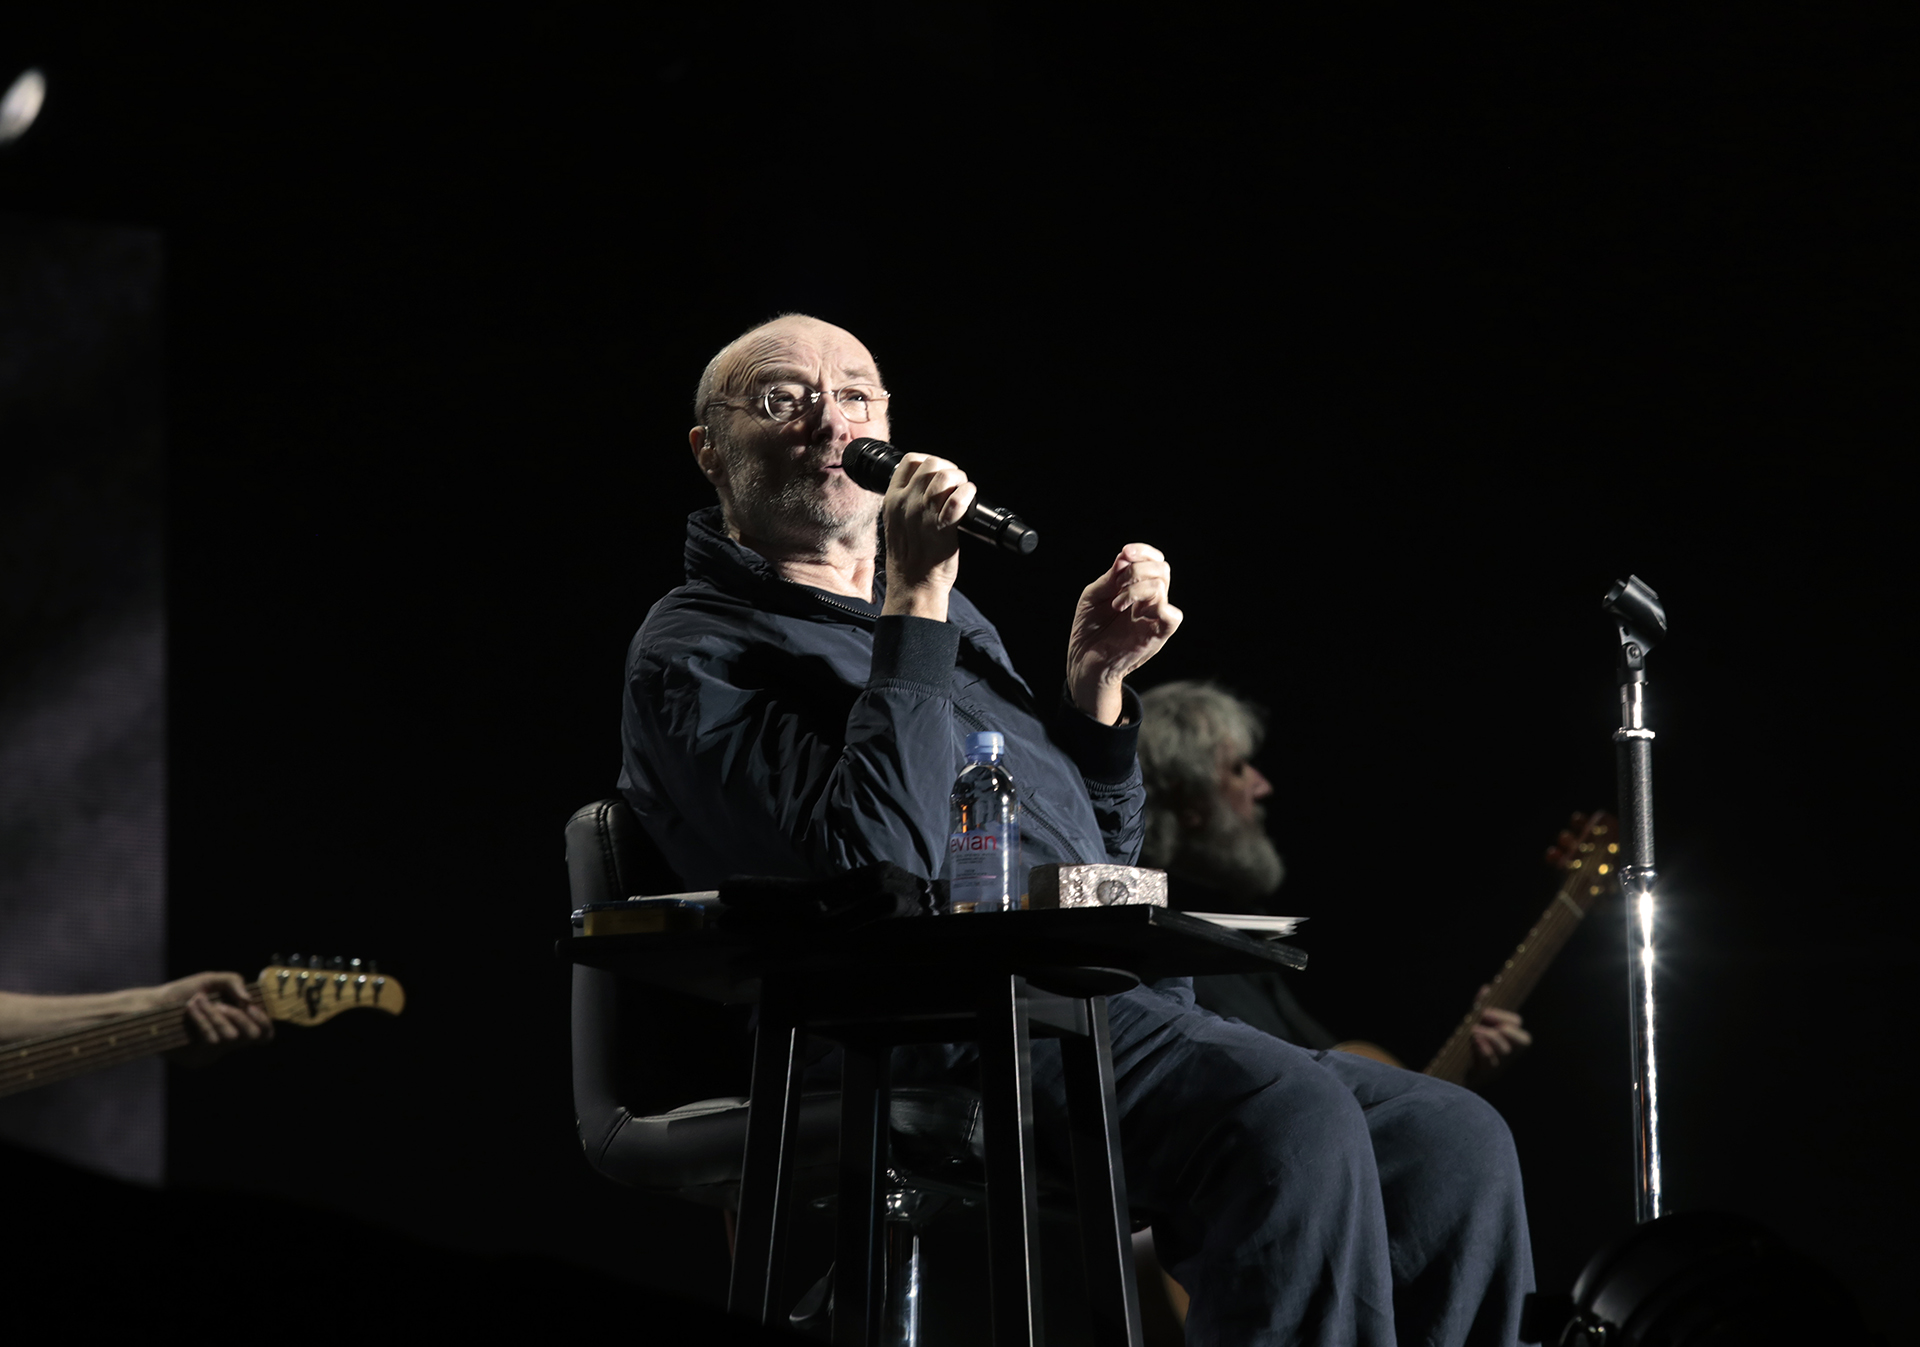 """Sir Phil Collins interpretó temas como """"Against All Odds"""", """"Another Day in Paradise"""", """"I Miss Again"""" y """"Throwing It All Again"""" (Christian Bochichio / Teleshow)"""